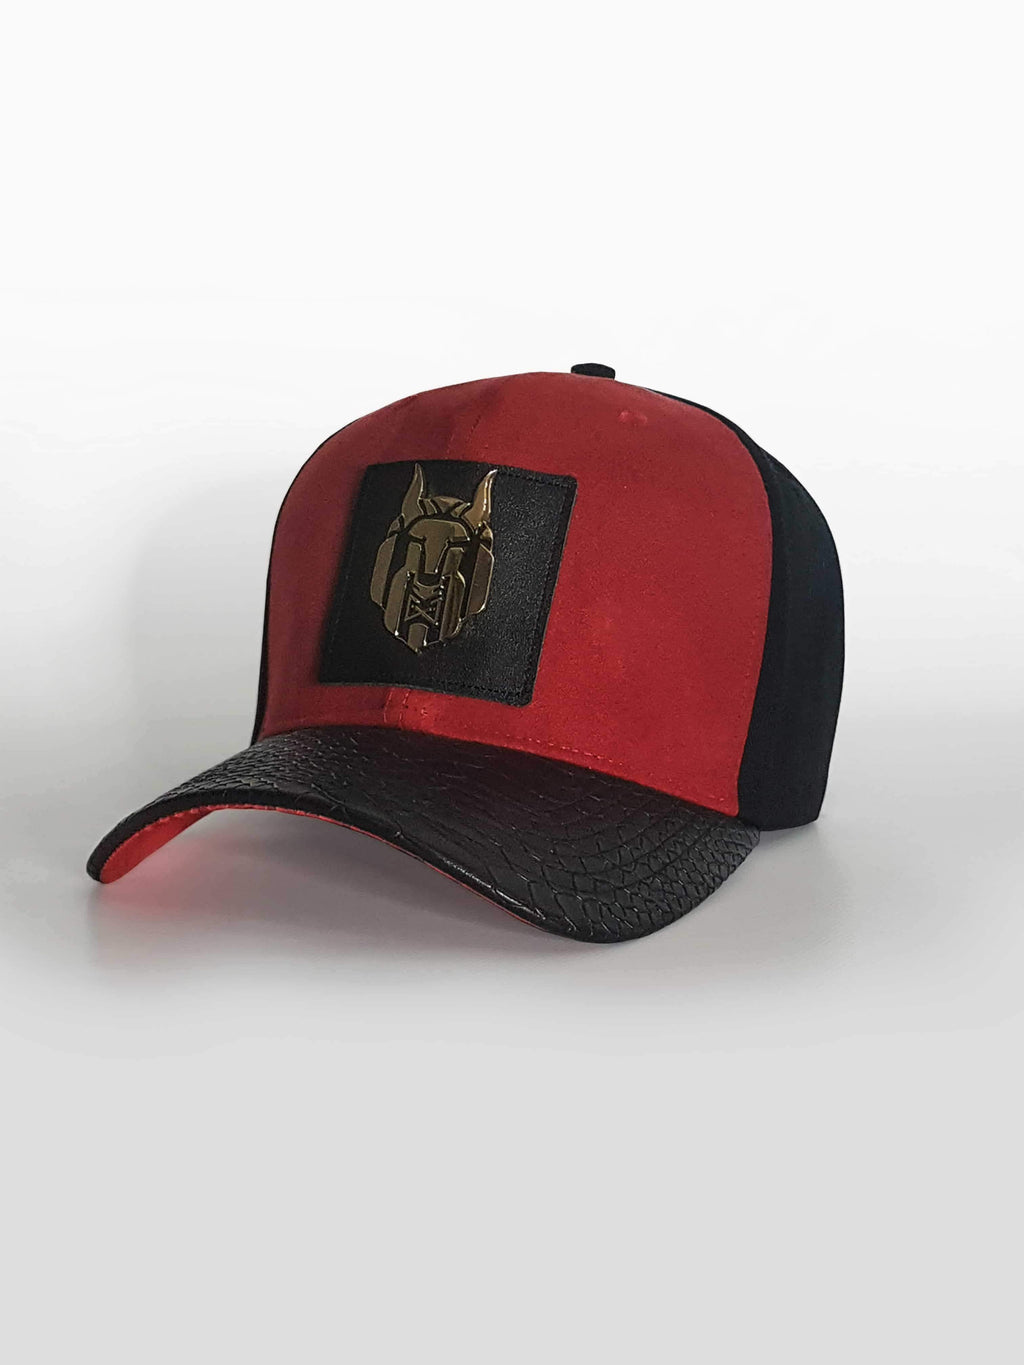 MEN WOLVEZ NOT SHEEP RED SUEDE HAT - Brit Boss